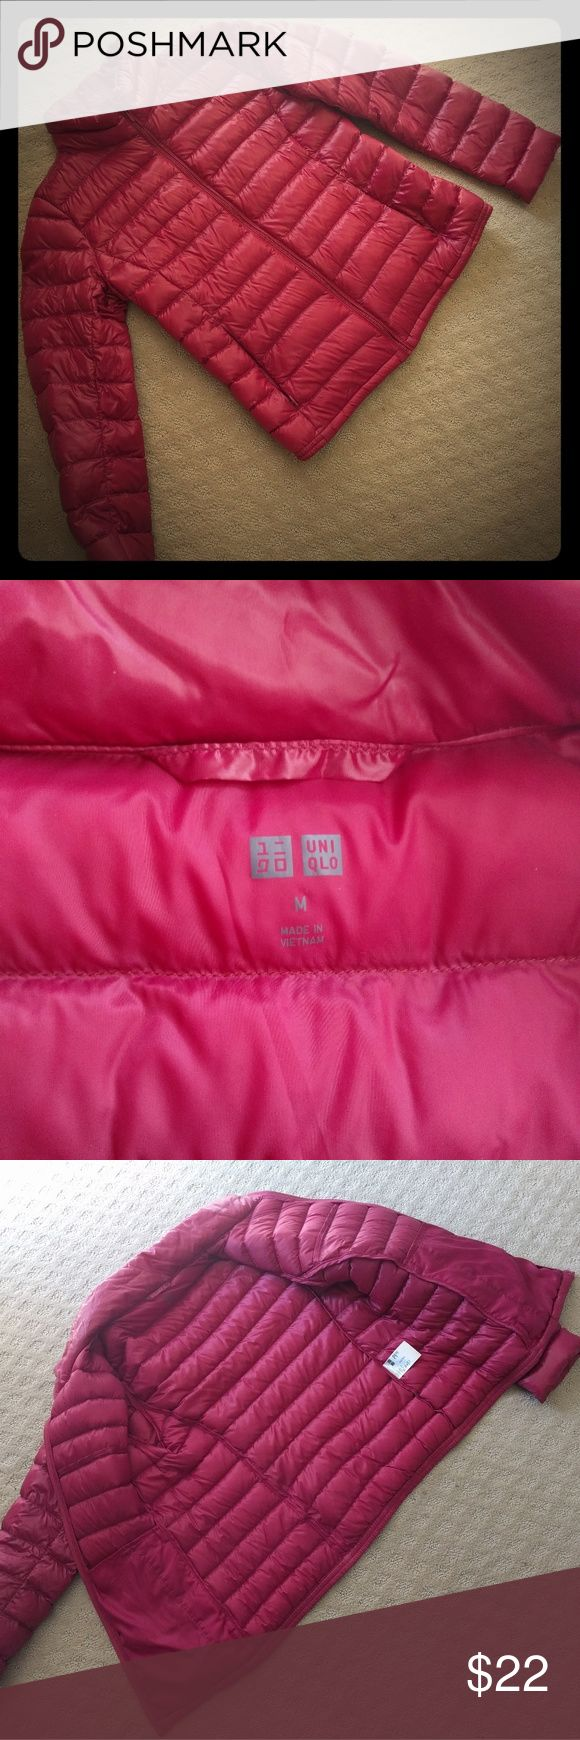 SOLD Uniqlo puffer down jacket in M Uniqlo puffer down jacket in dark pink. It's like brand new only worn less than 5 times. Too big on me. SOLD Uniqlo Jackets & Coats Puffers